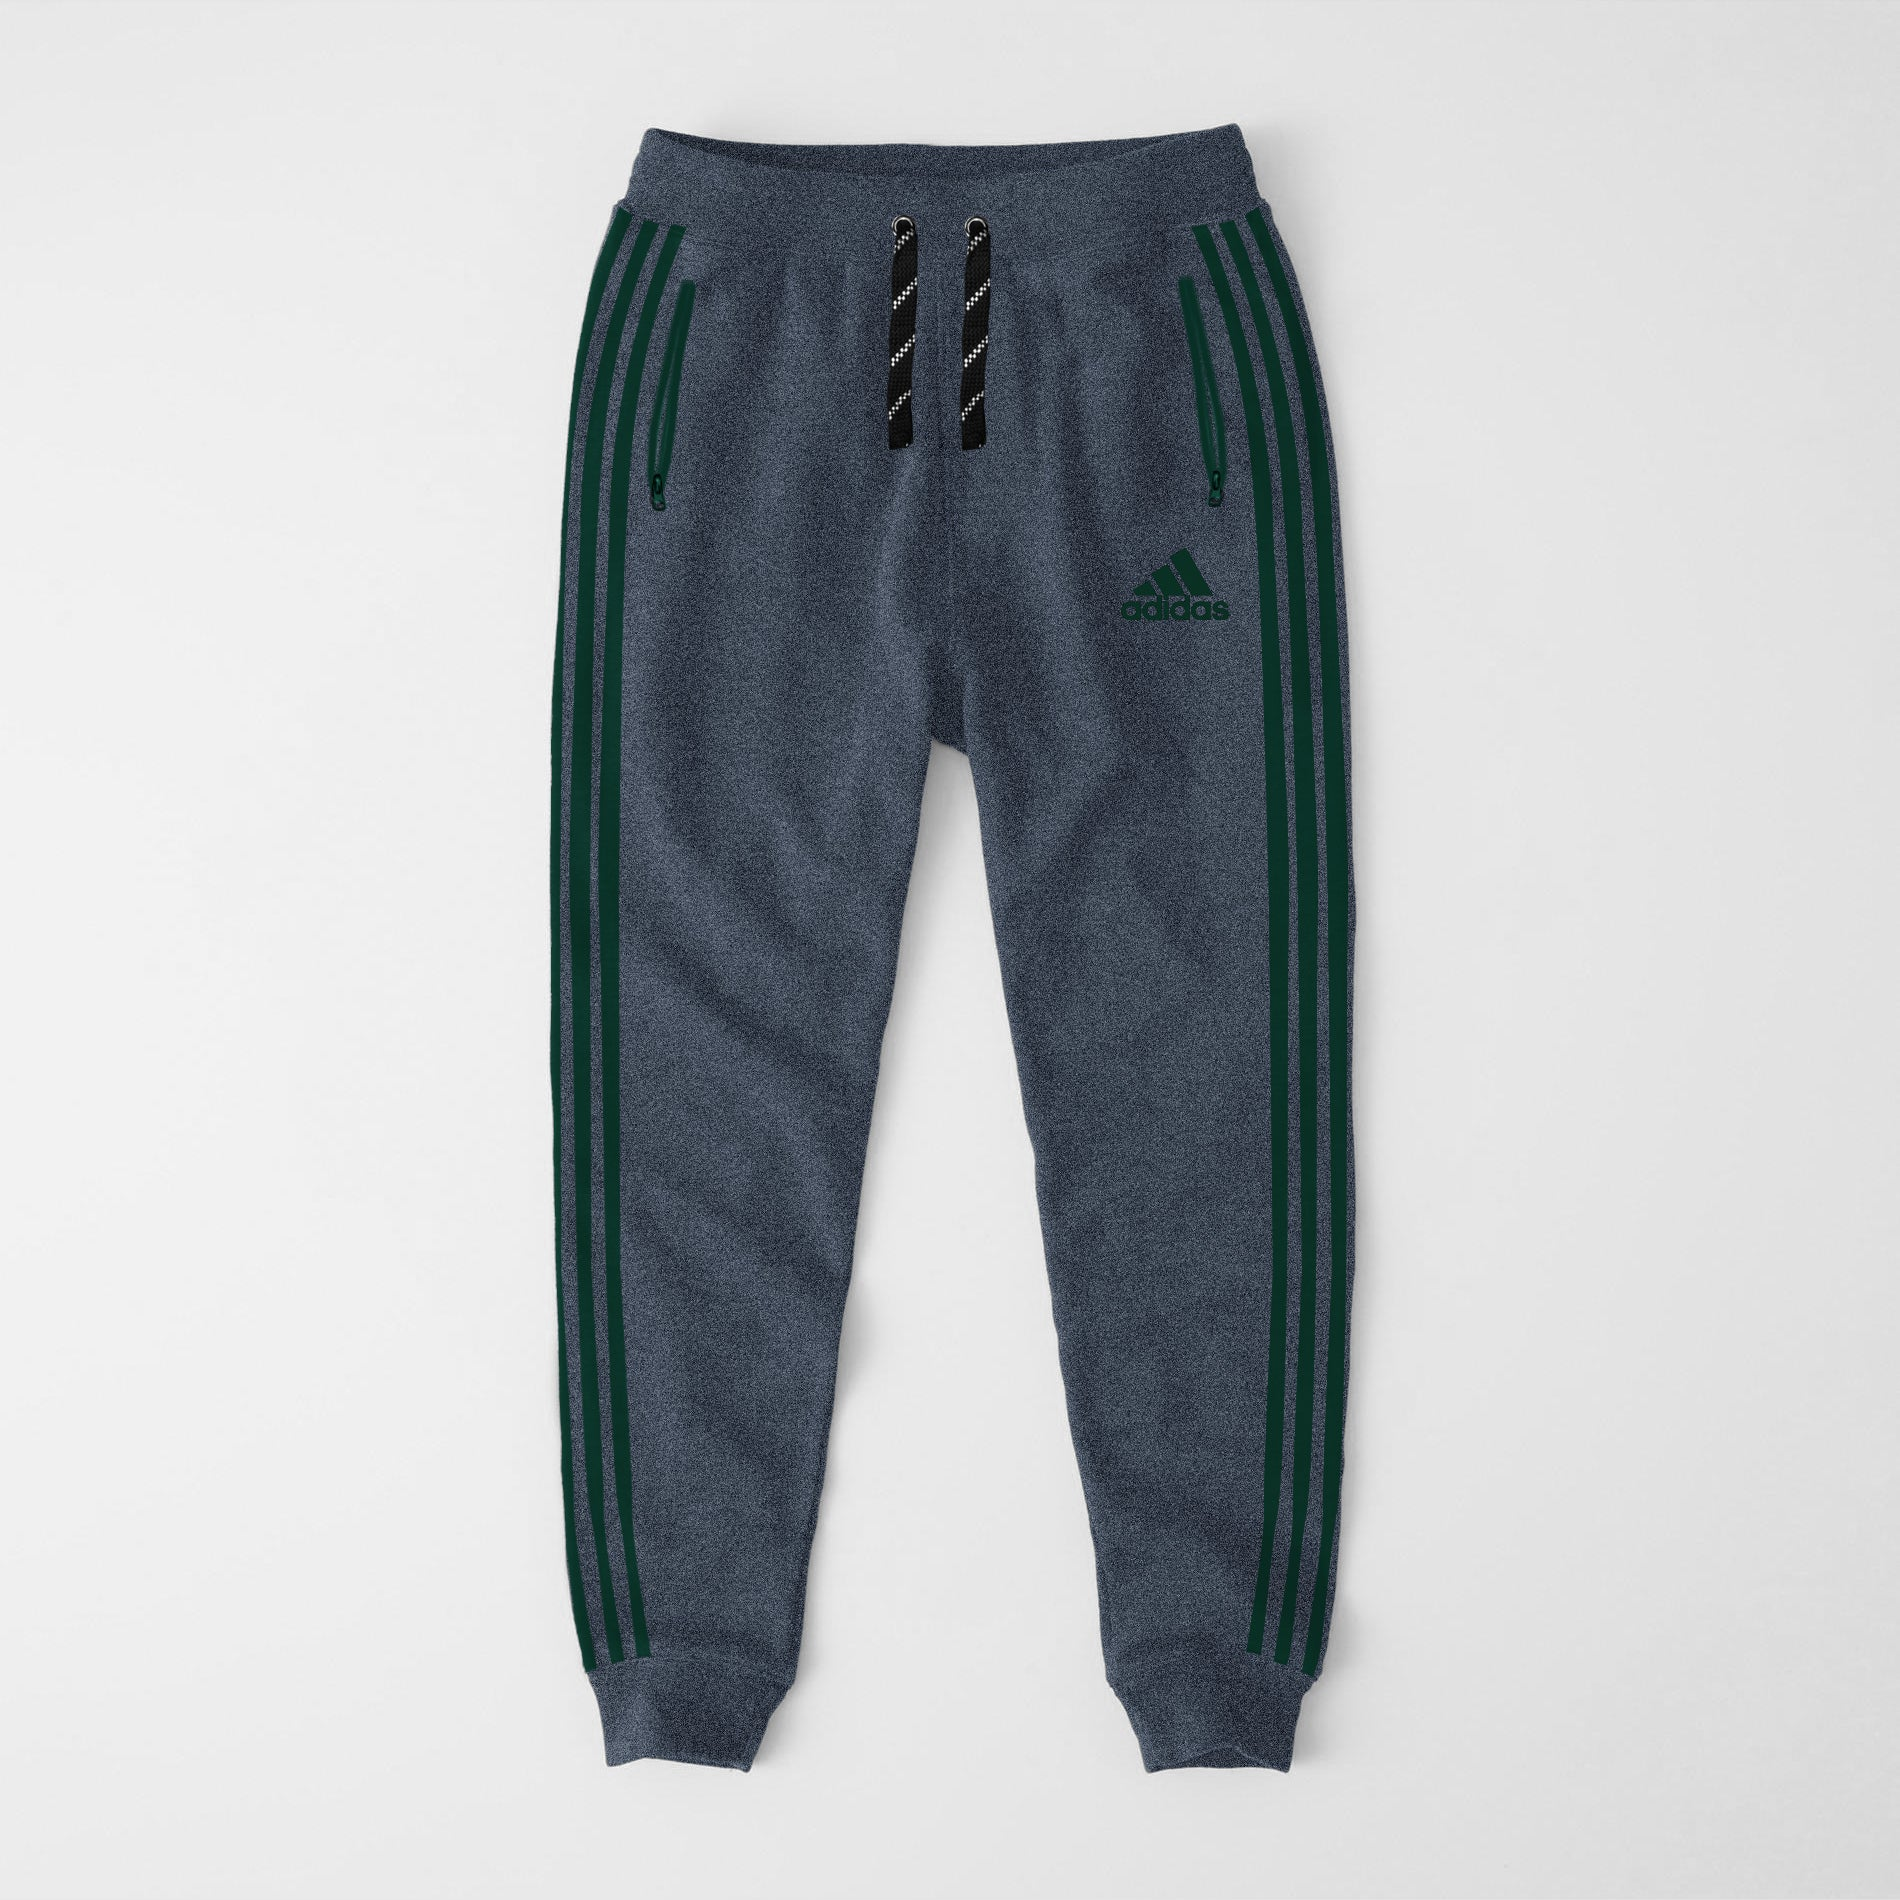 Adidas Single Jersey Slim Fit Jogger Trouser For Men-Blue Melange With Green Stripes-NA8257